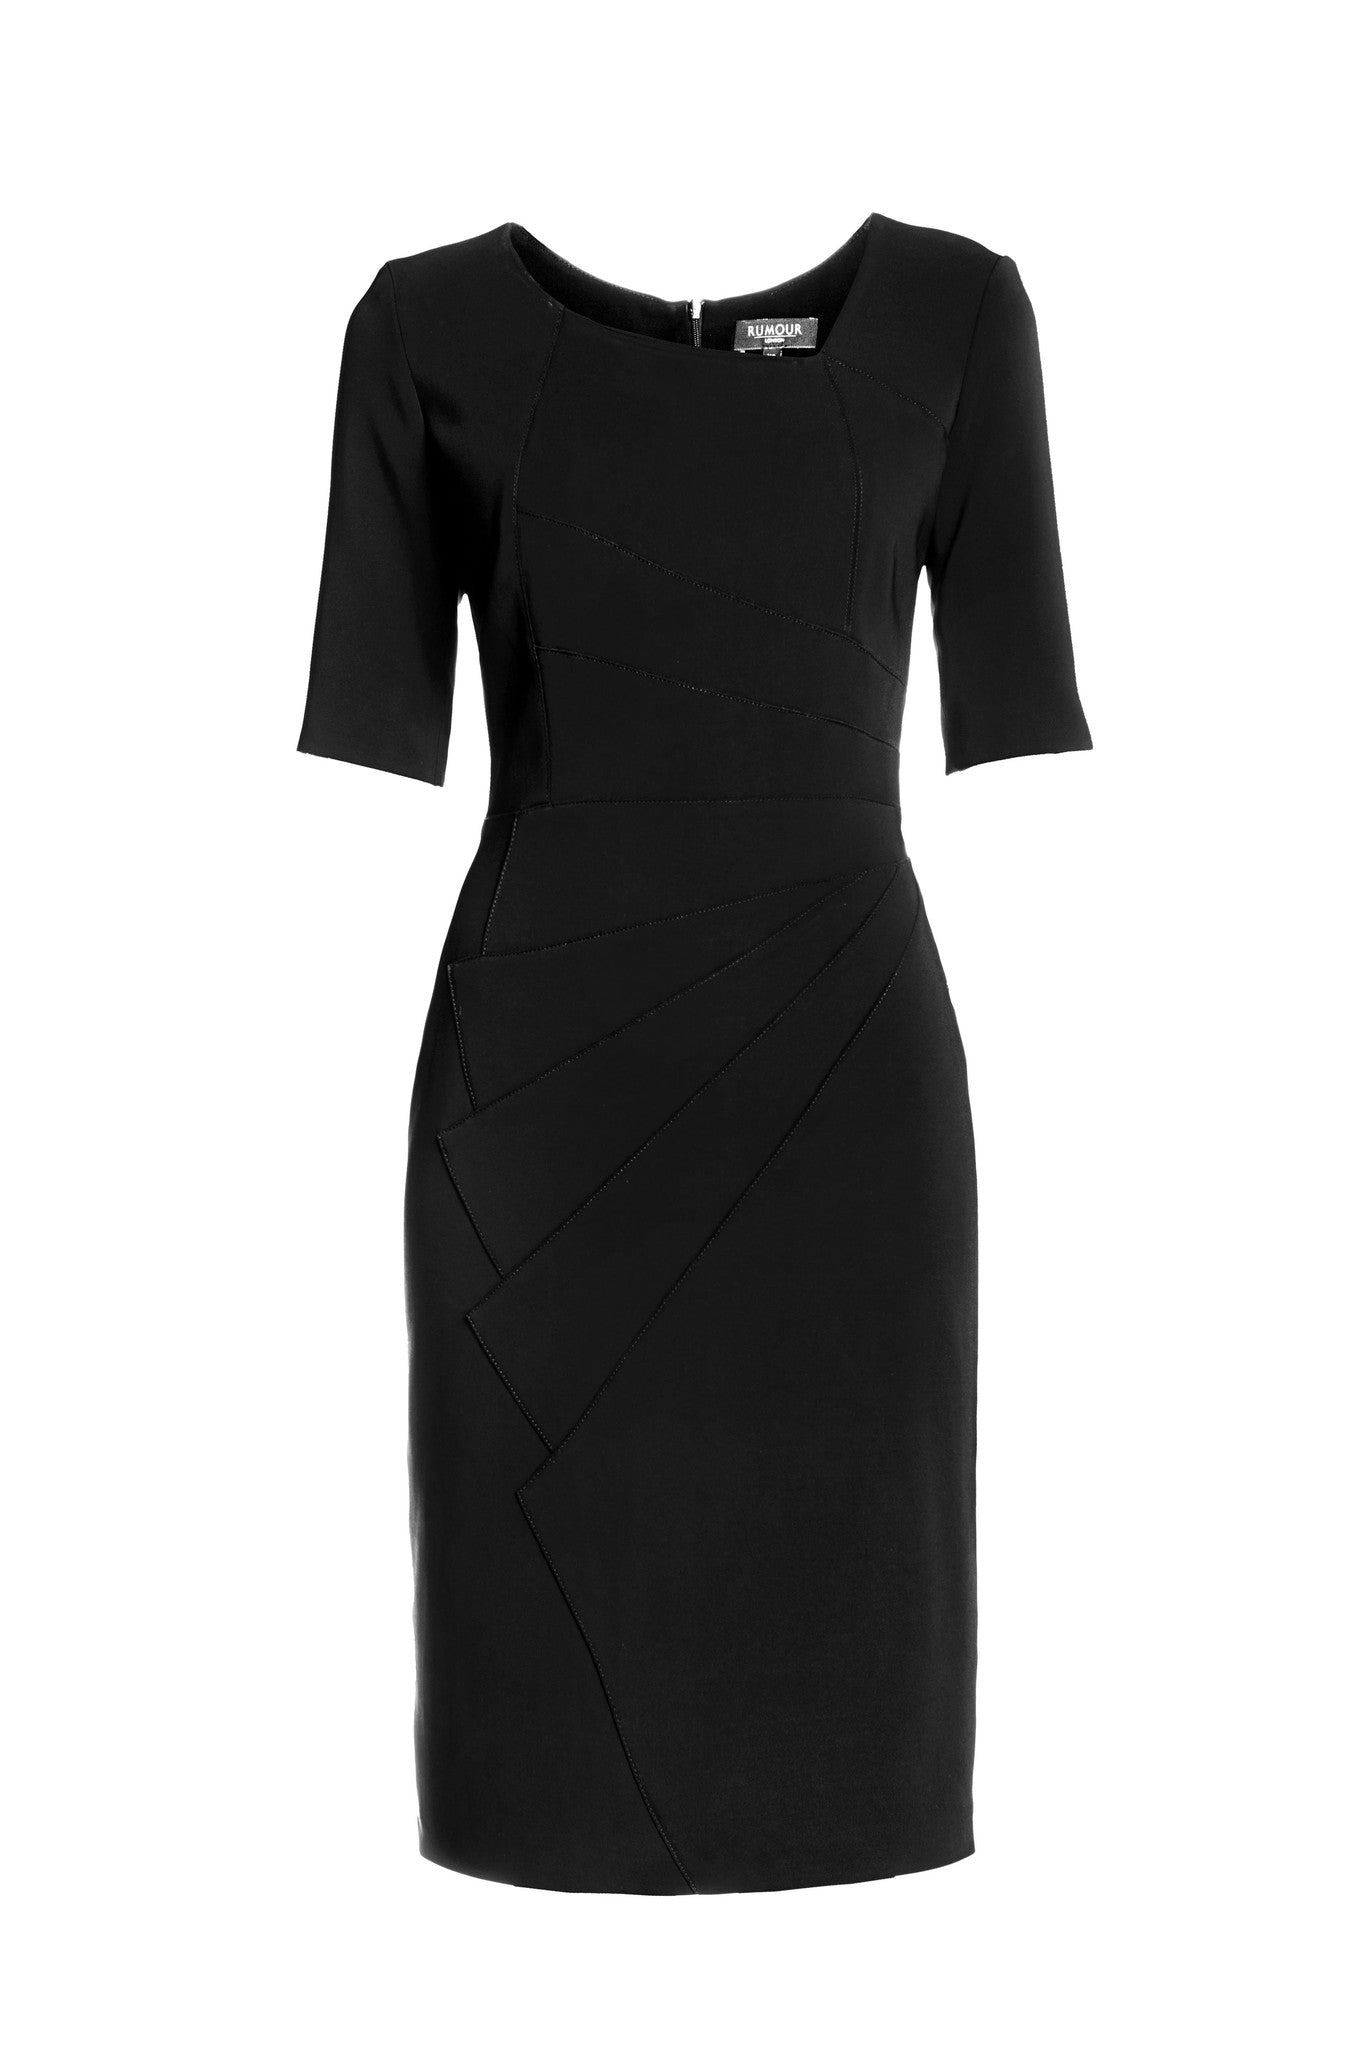 Black Fitted Knee Length Dress with Asymmetrical Neckline